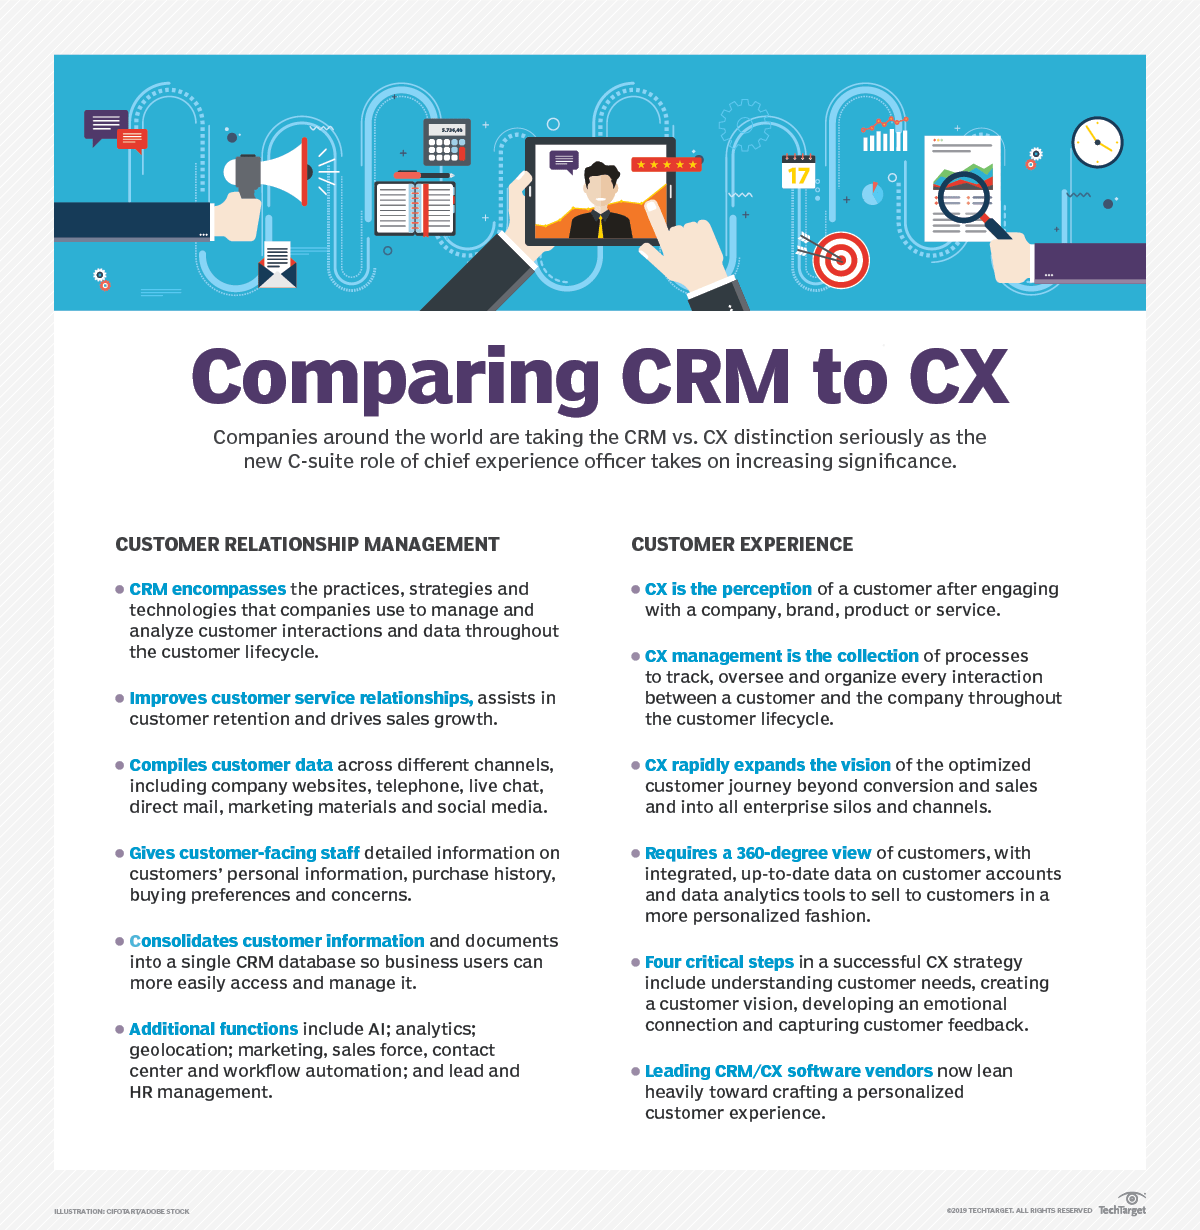 The differences between CRM vs. CX strategy